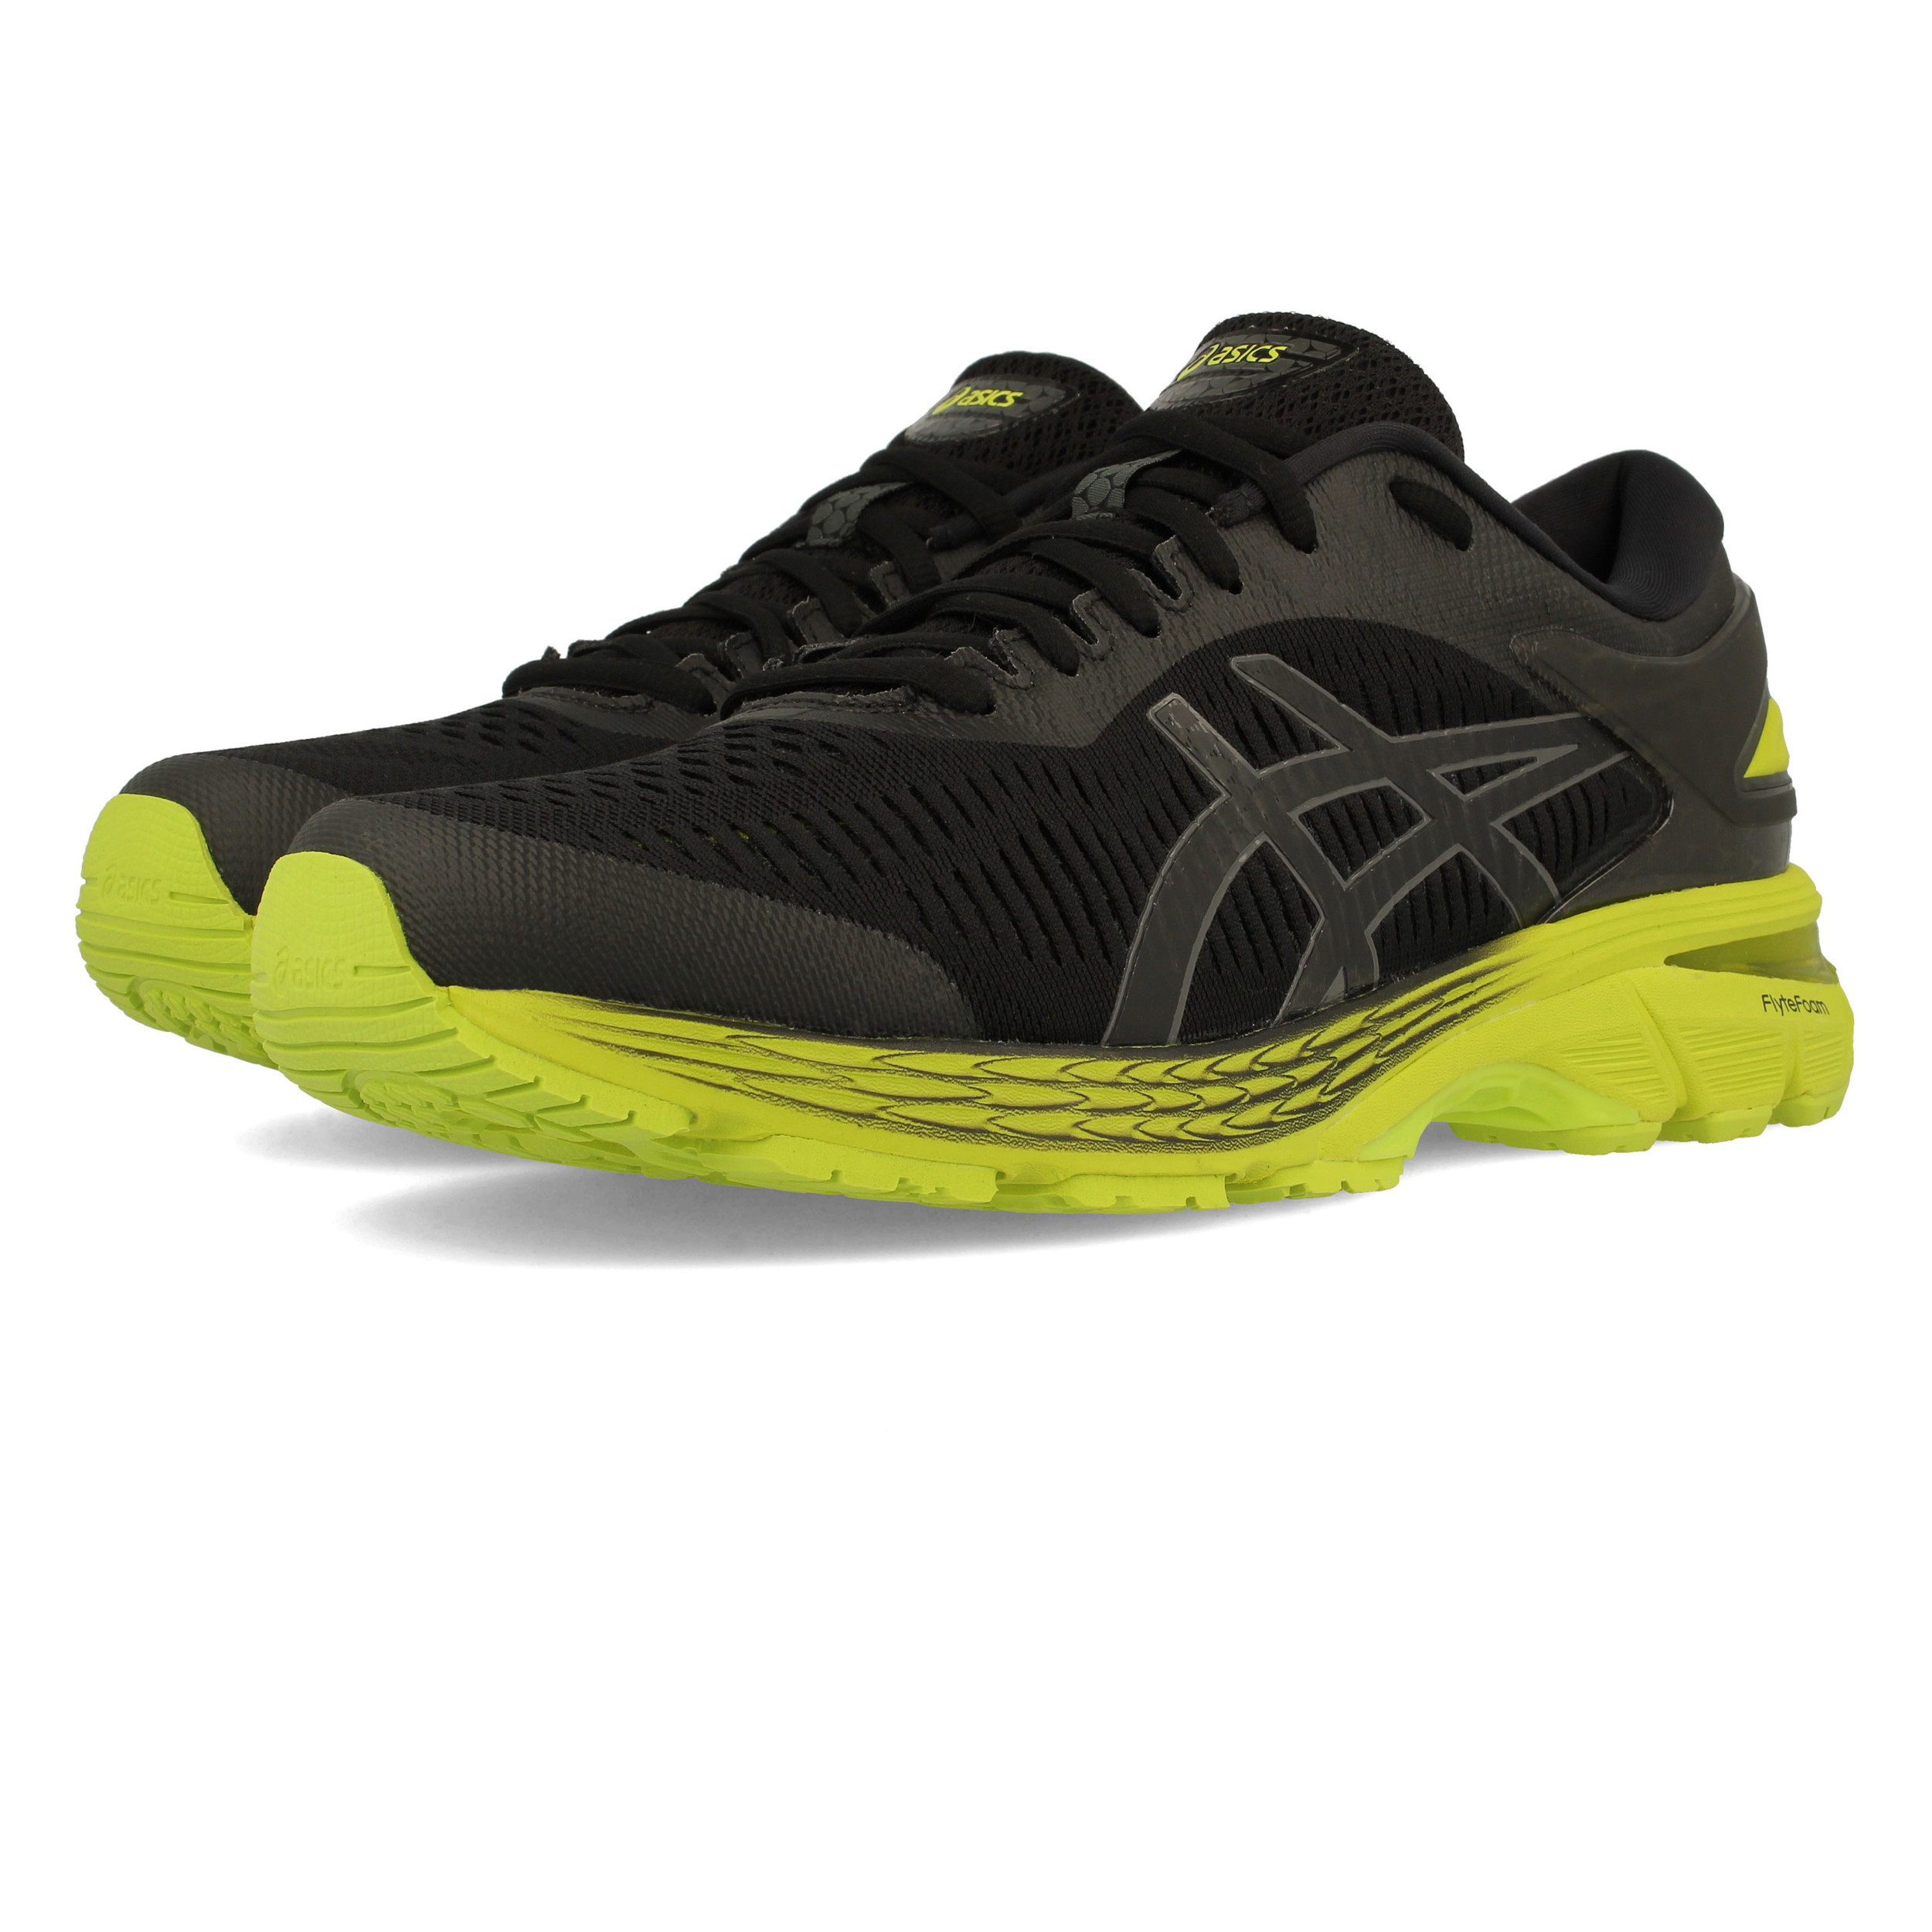 ad51c4a59cb3 Asics Mens Gel-Kayano 25 Running Shoes Trainers Sneakers Black Sports  Breathable